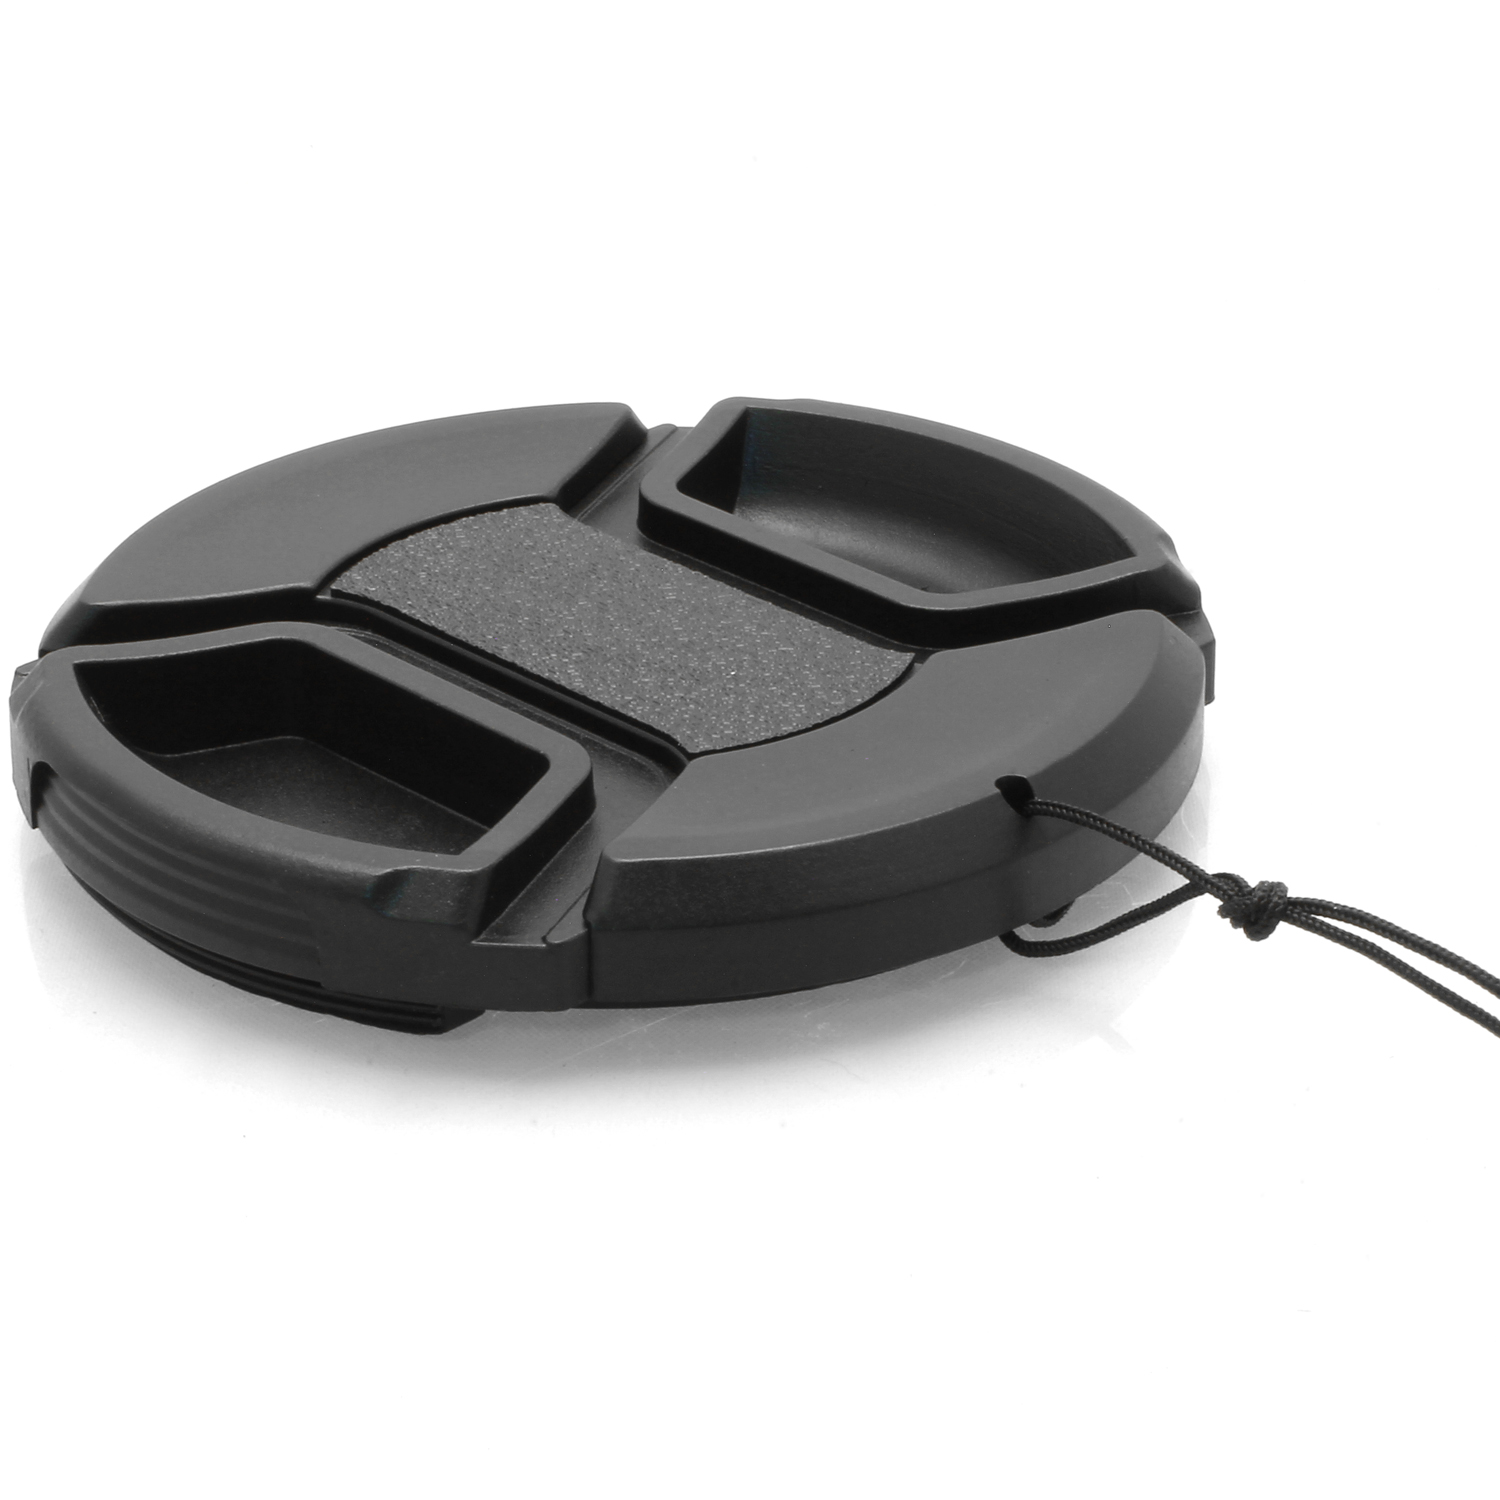 iGadgitz Xtra 62mm Centre Pinch Snap-On Lens Hood Cap Cover with Cord for SLR & DSLR Cameras